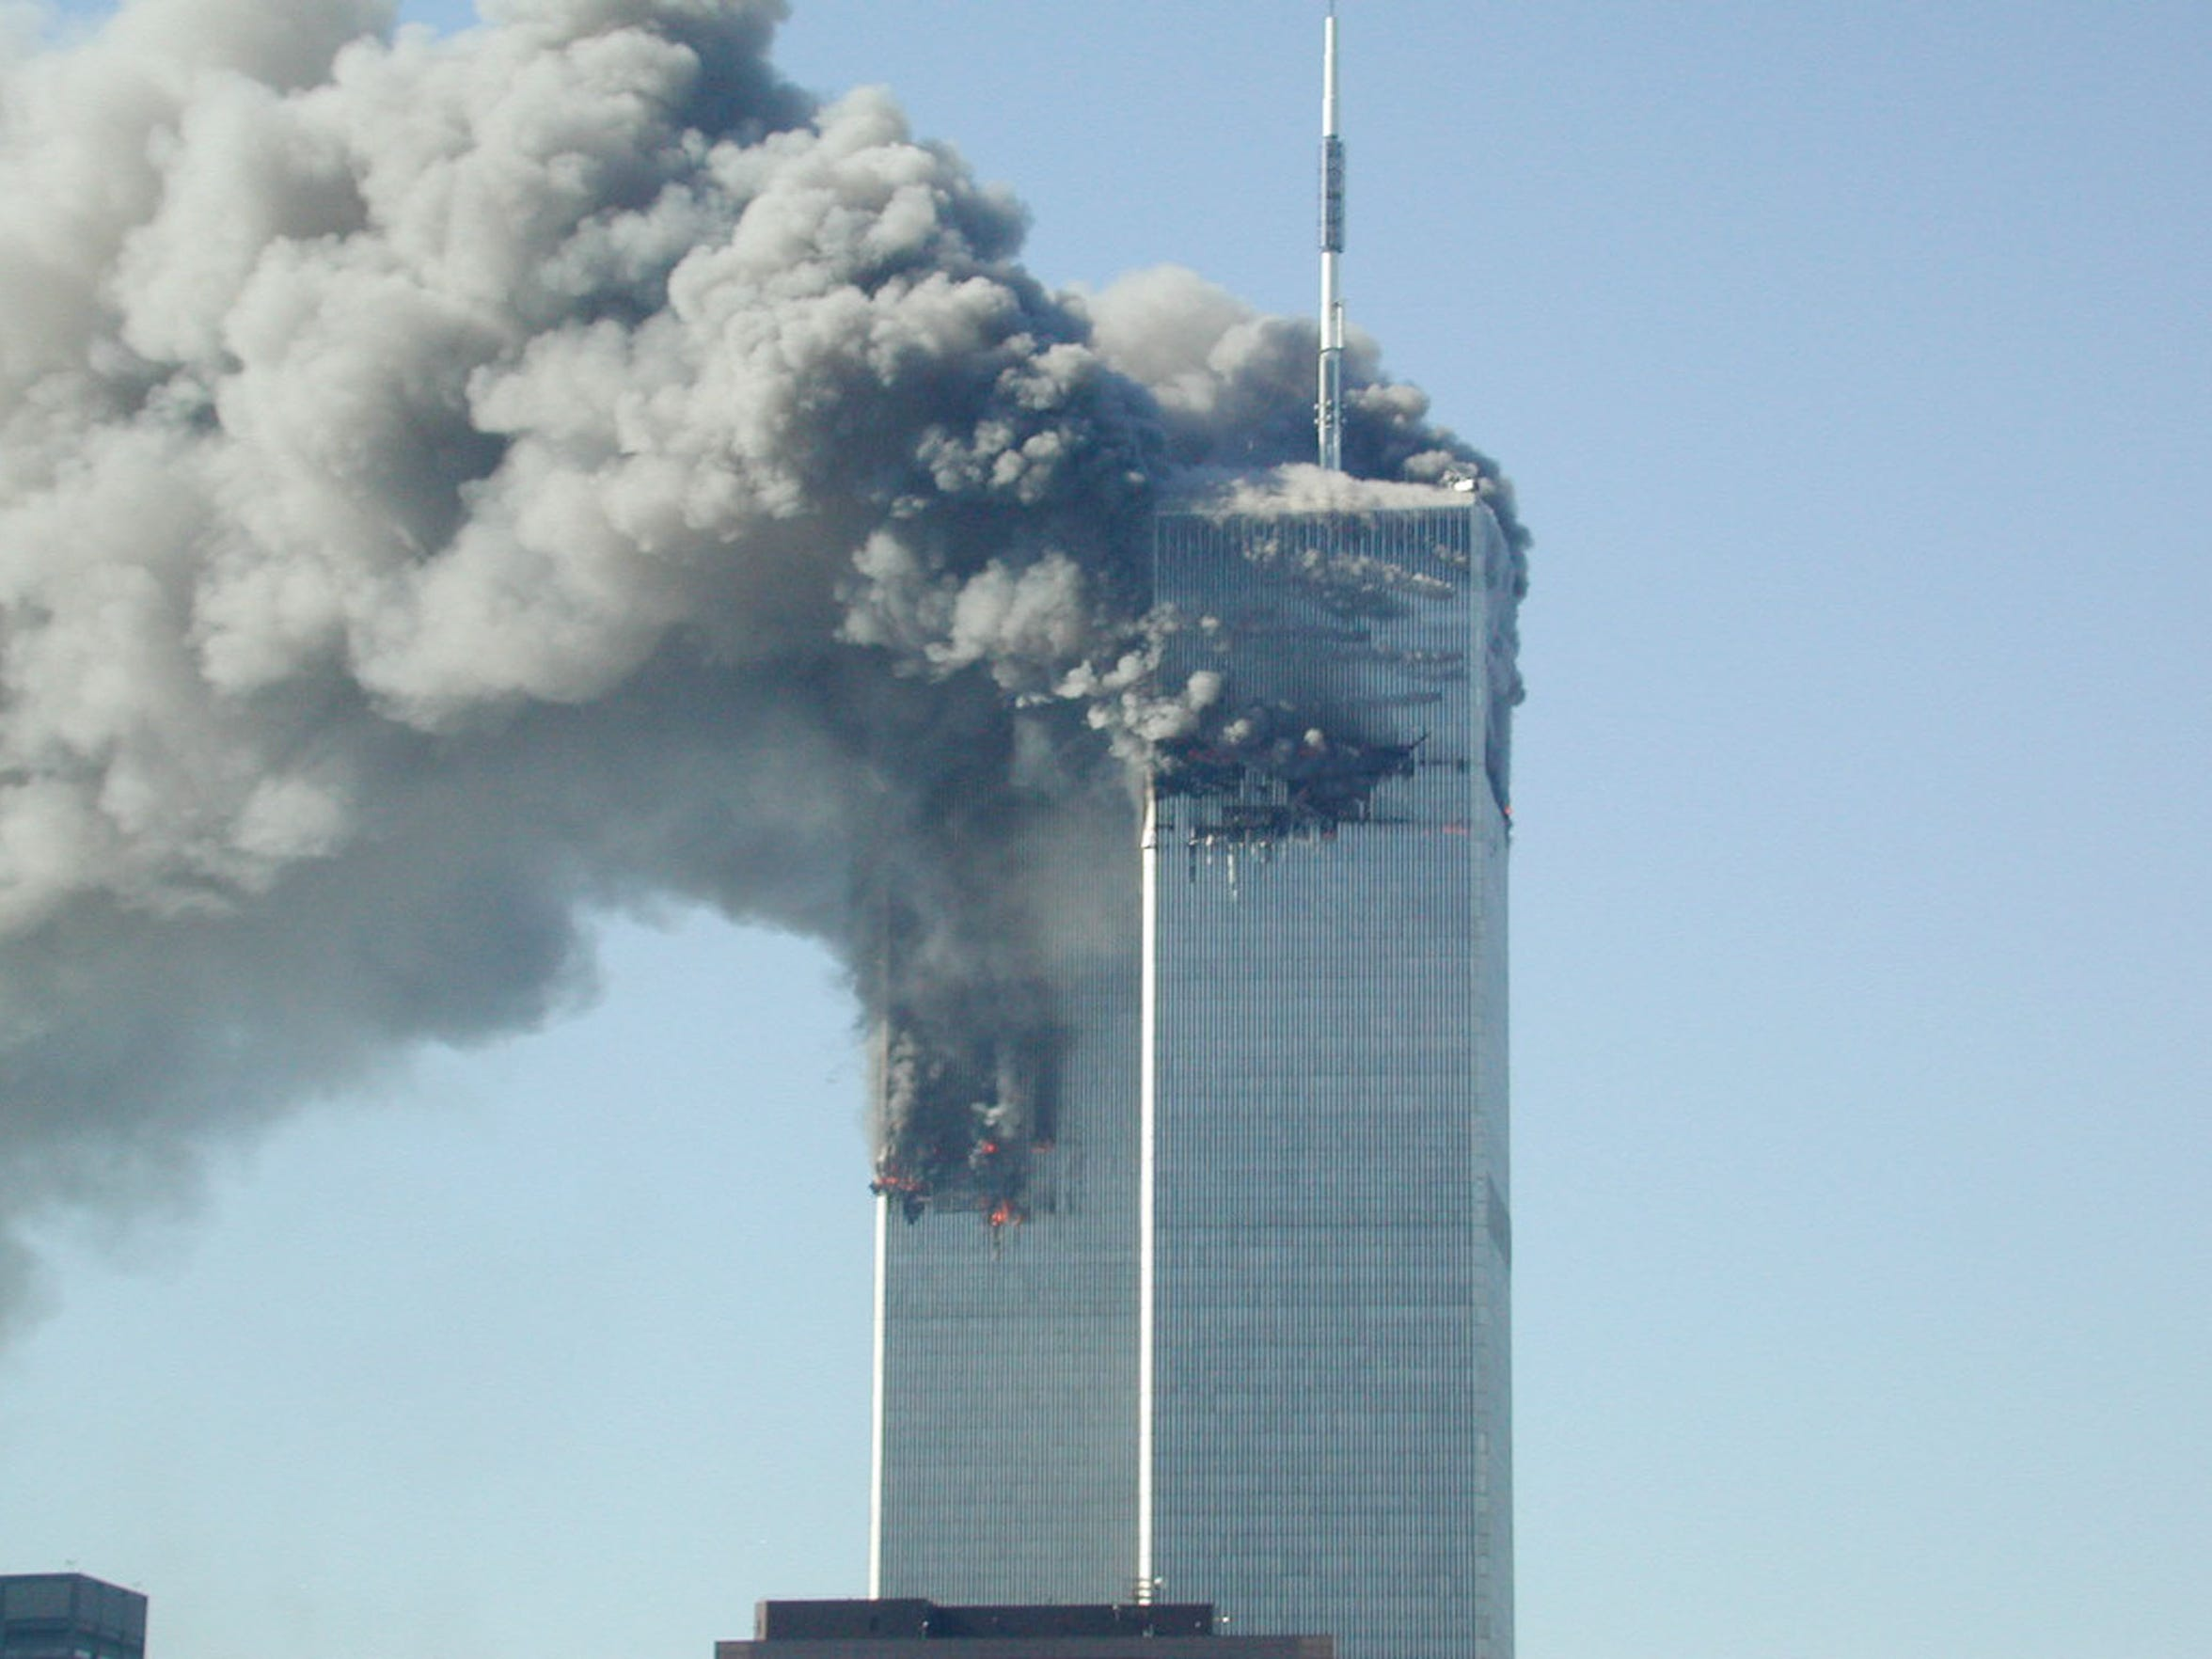 Smoke pours from the World Trade Center after being